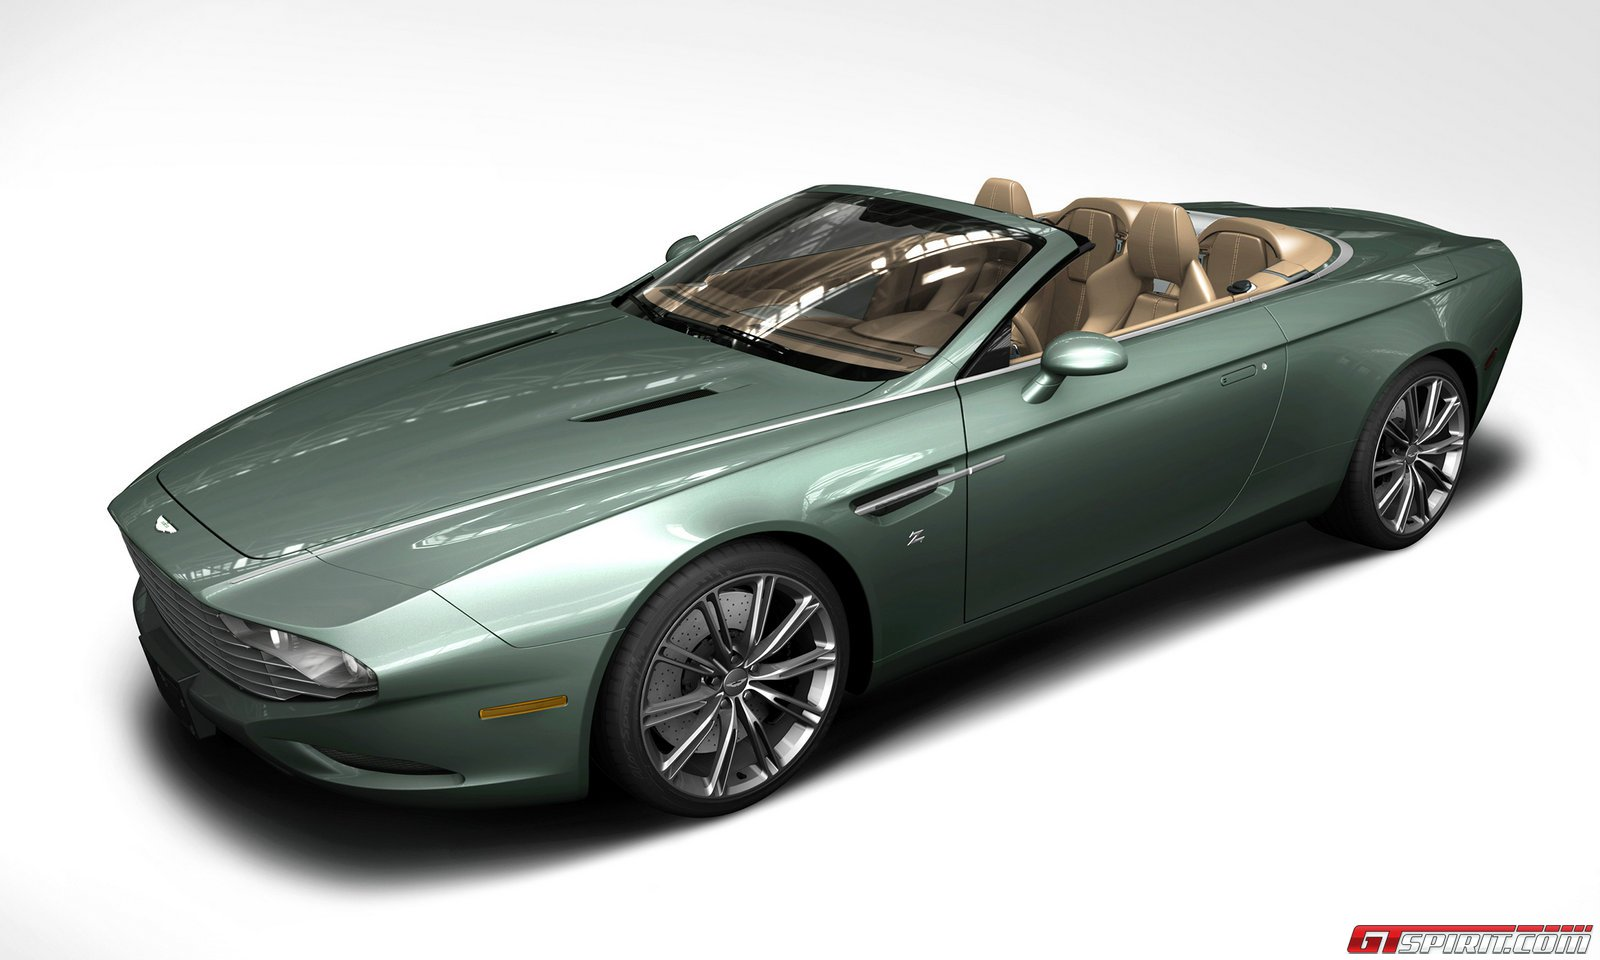 Aston Martin DB9 Spyder Zagato Centennial Official High Resolution Wallpaper Free